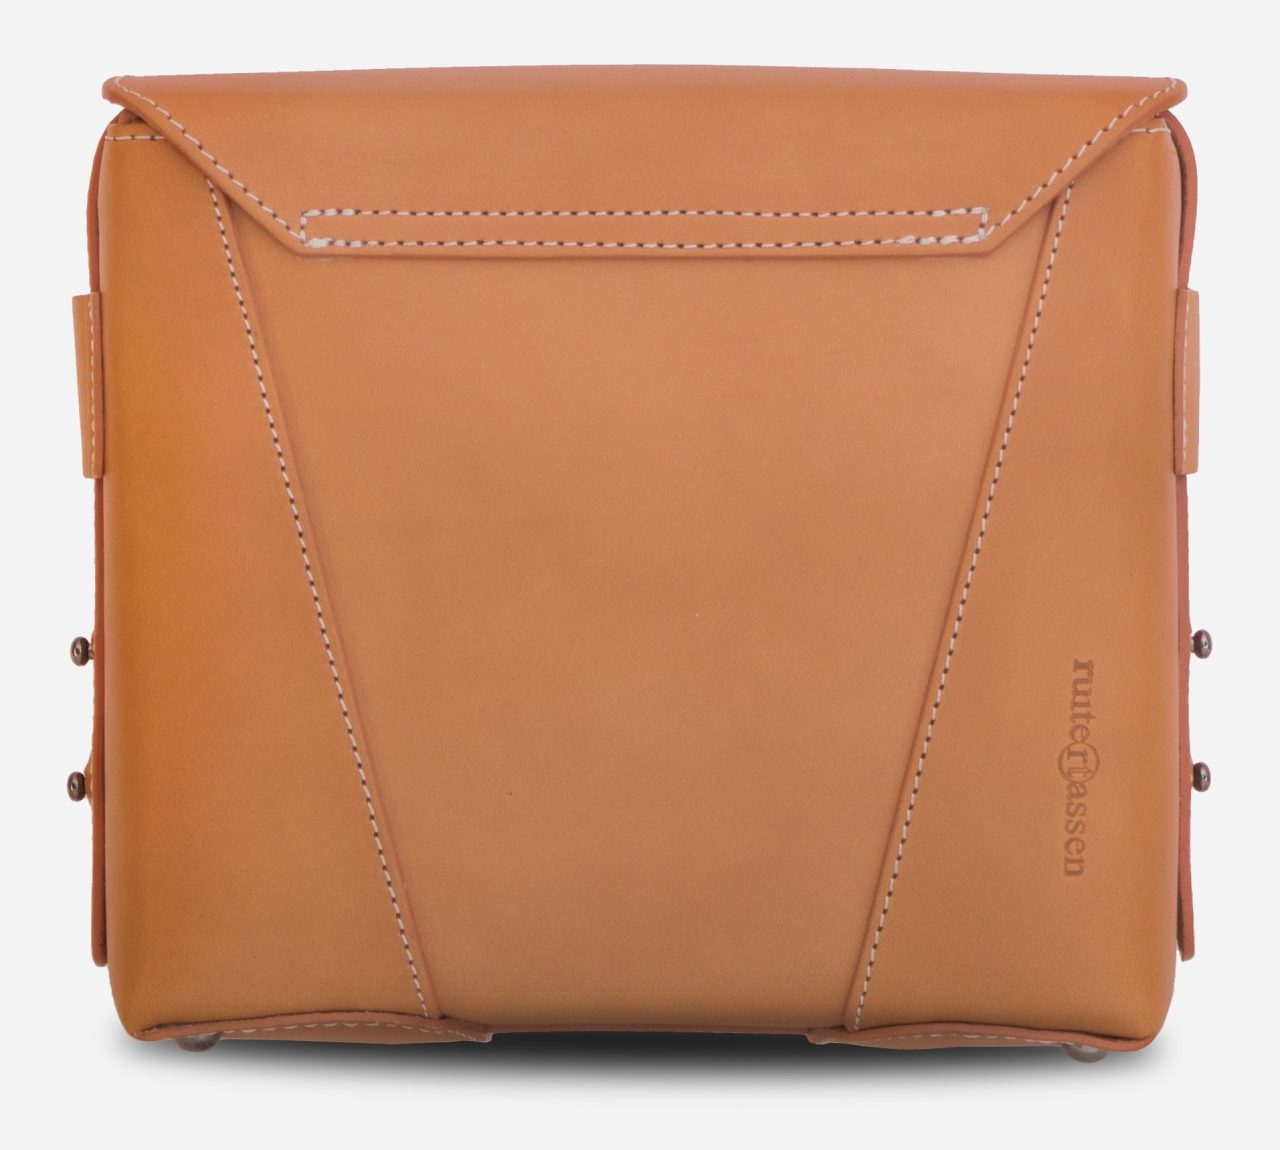 Back view of the small vegetable tanned leather crossbody bag.